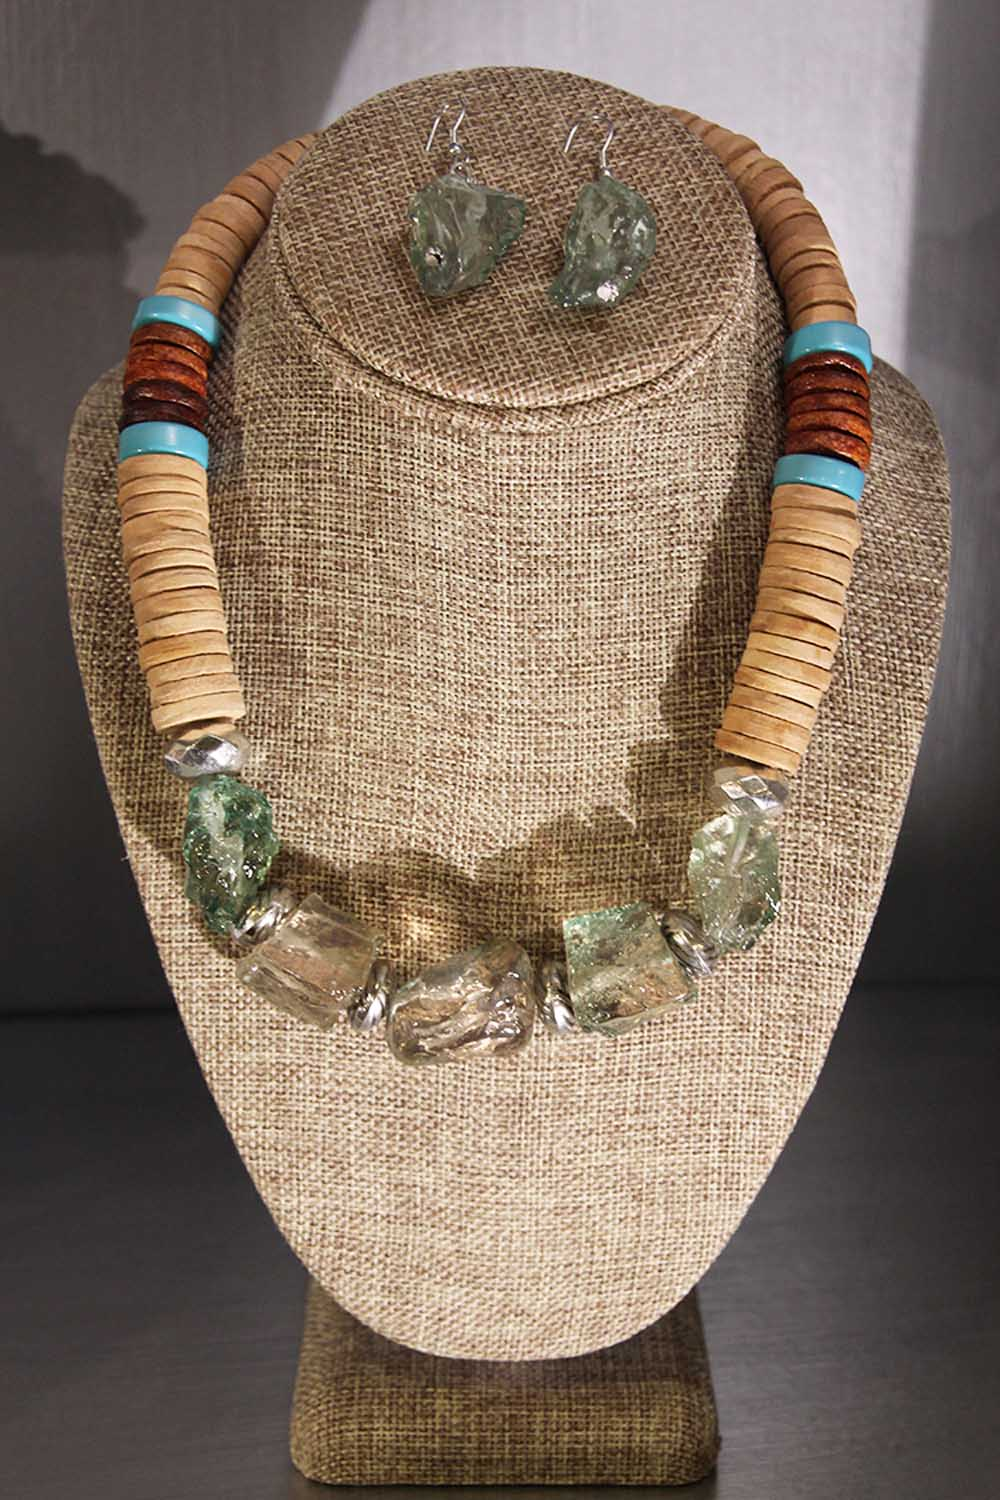 necklace and earrings on display